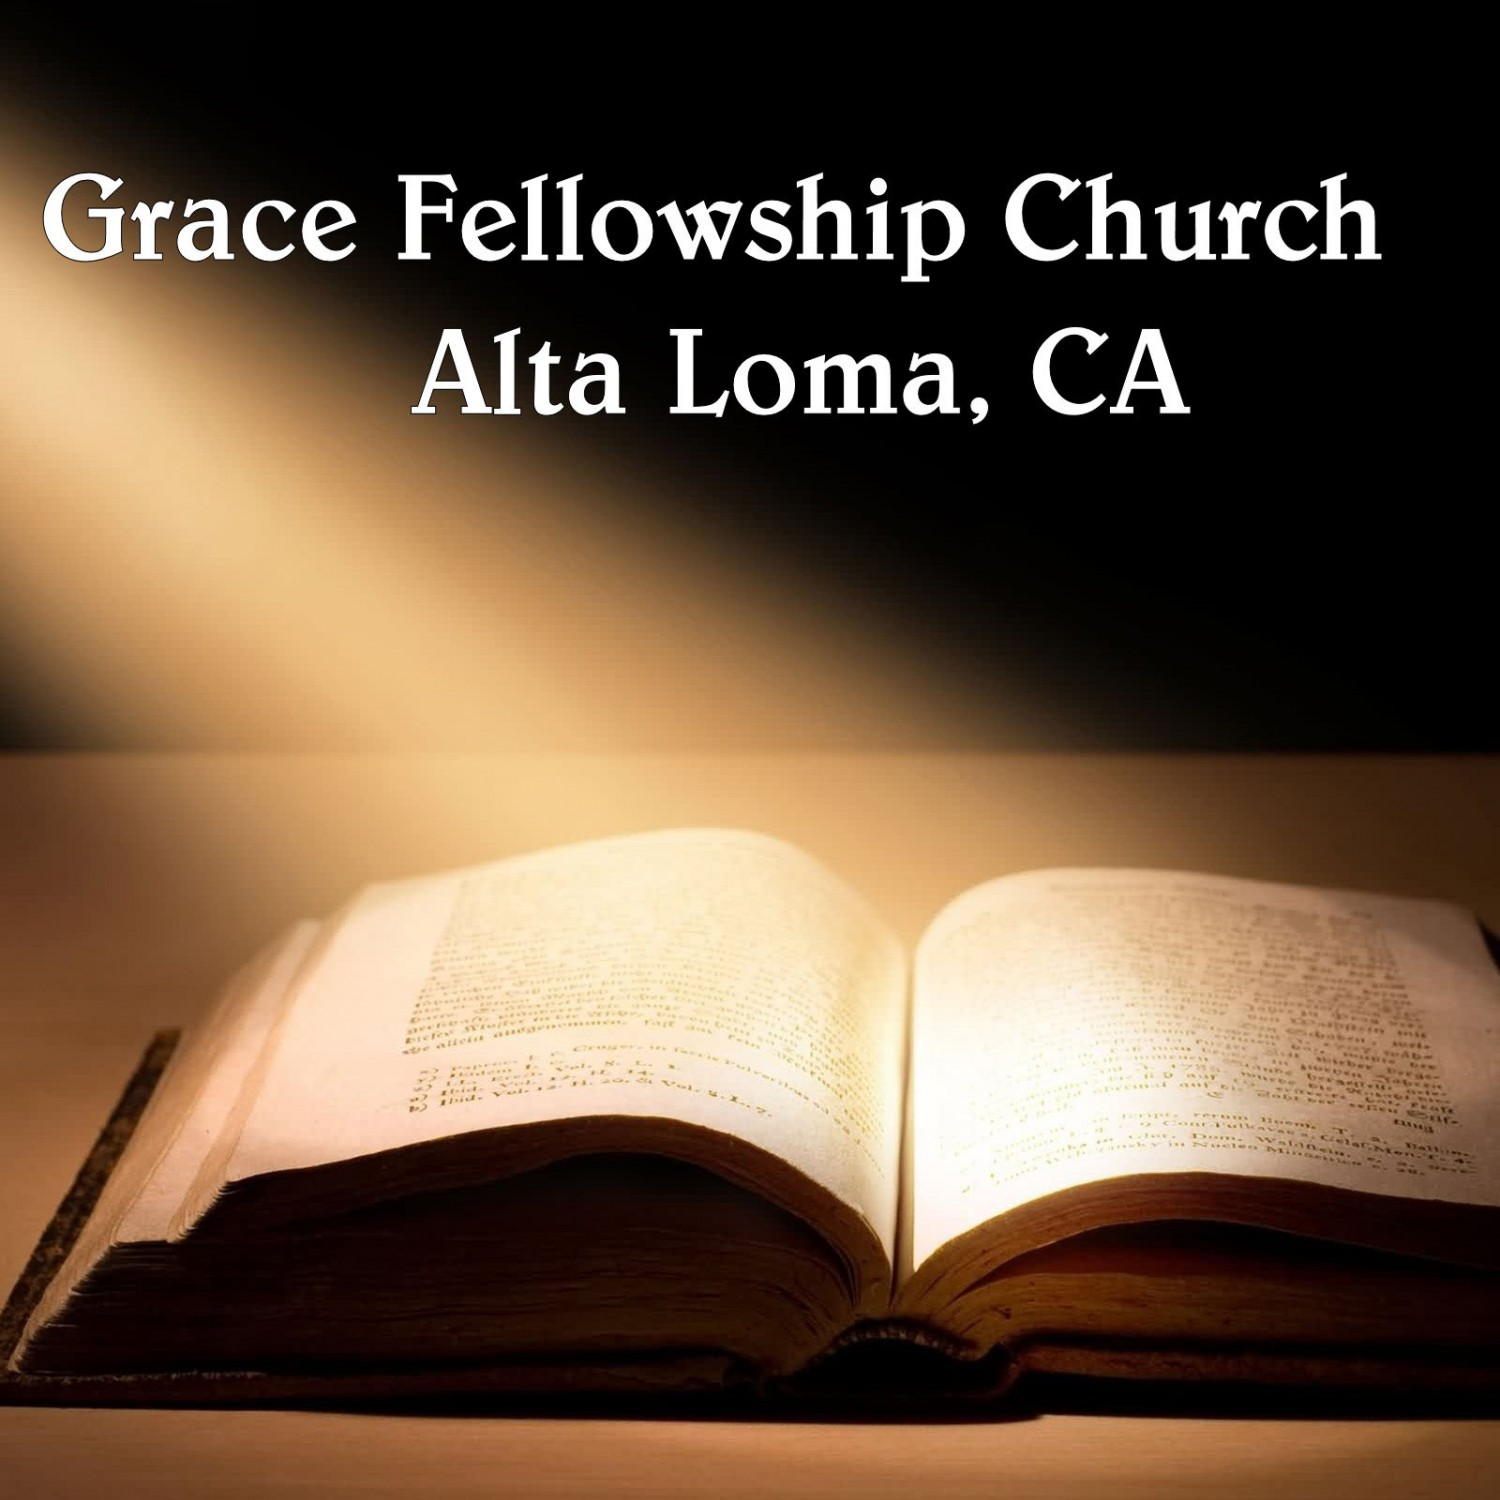 Grace Fellowship Church Alta Loma, CA